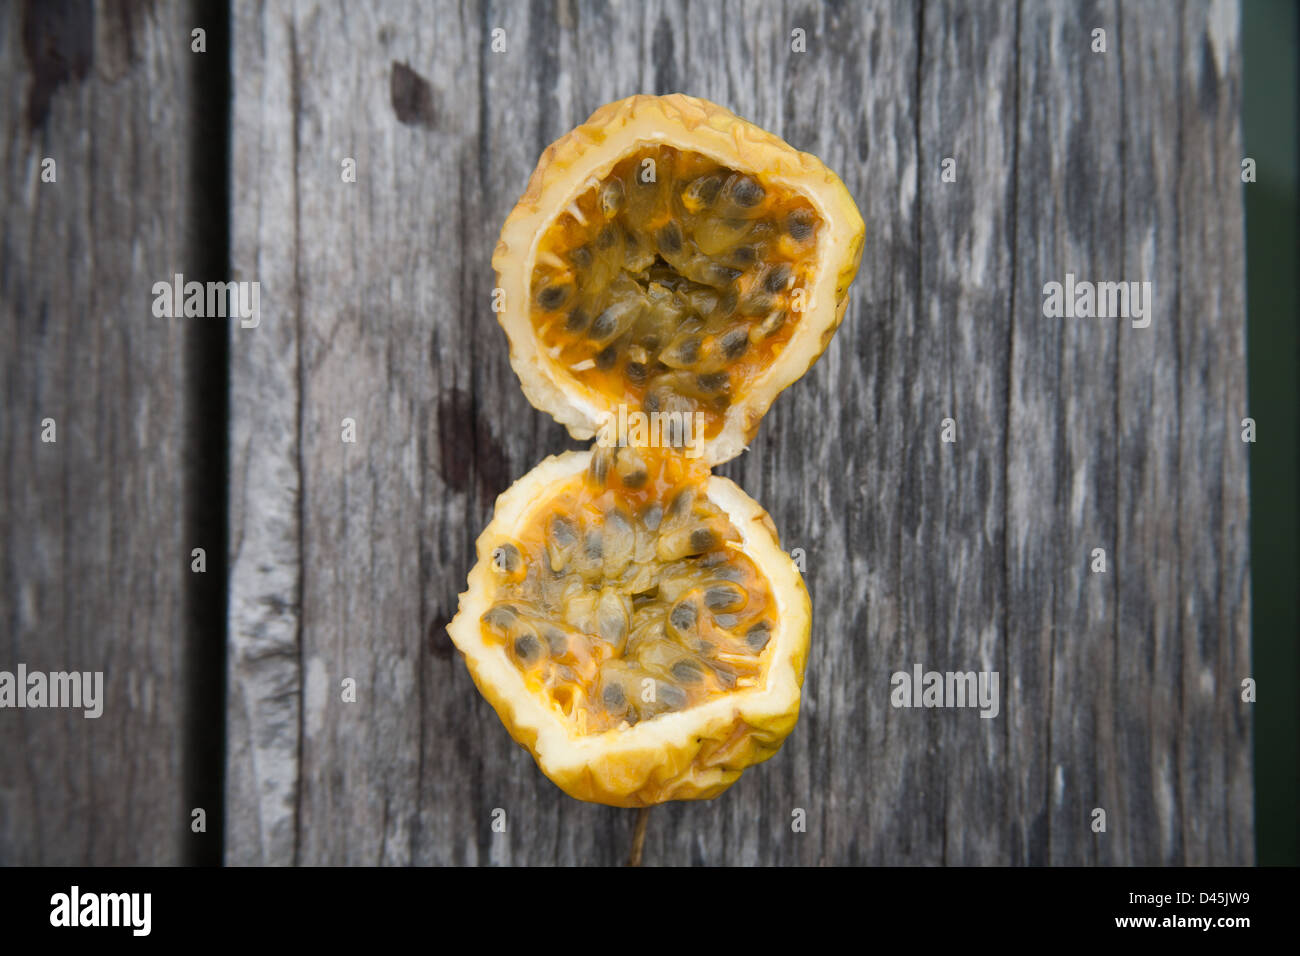 Exotic tropical fruit with yellow rind and black seeds Stock Photo